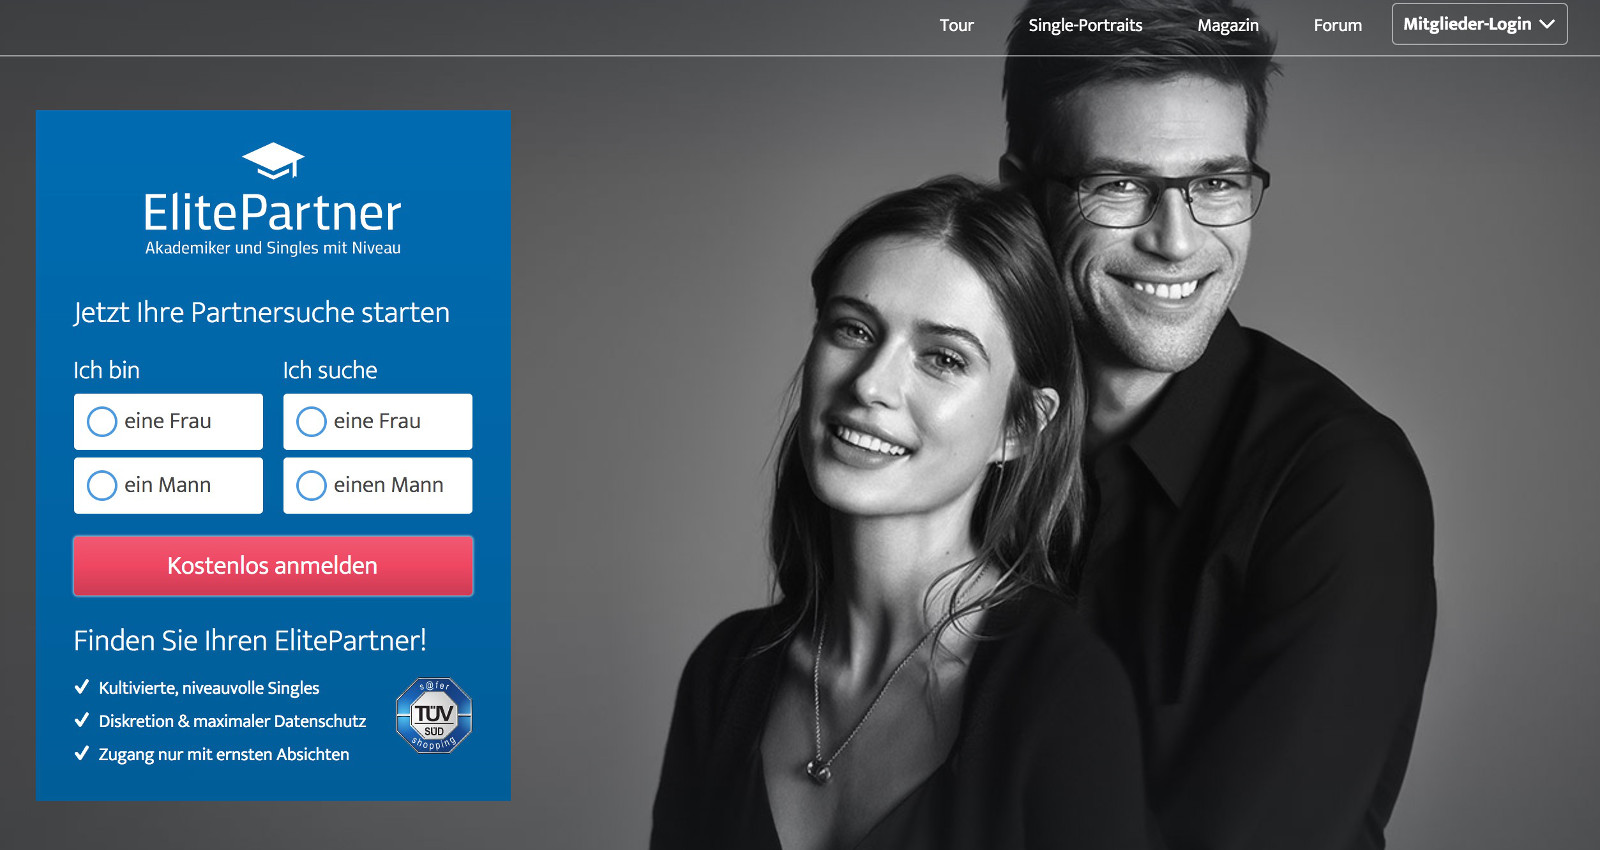 Partnersuche mit ElitePartner